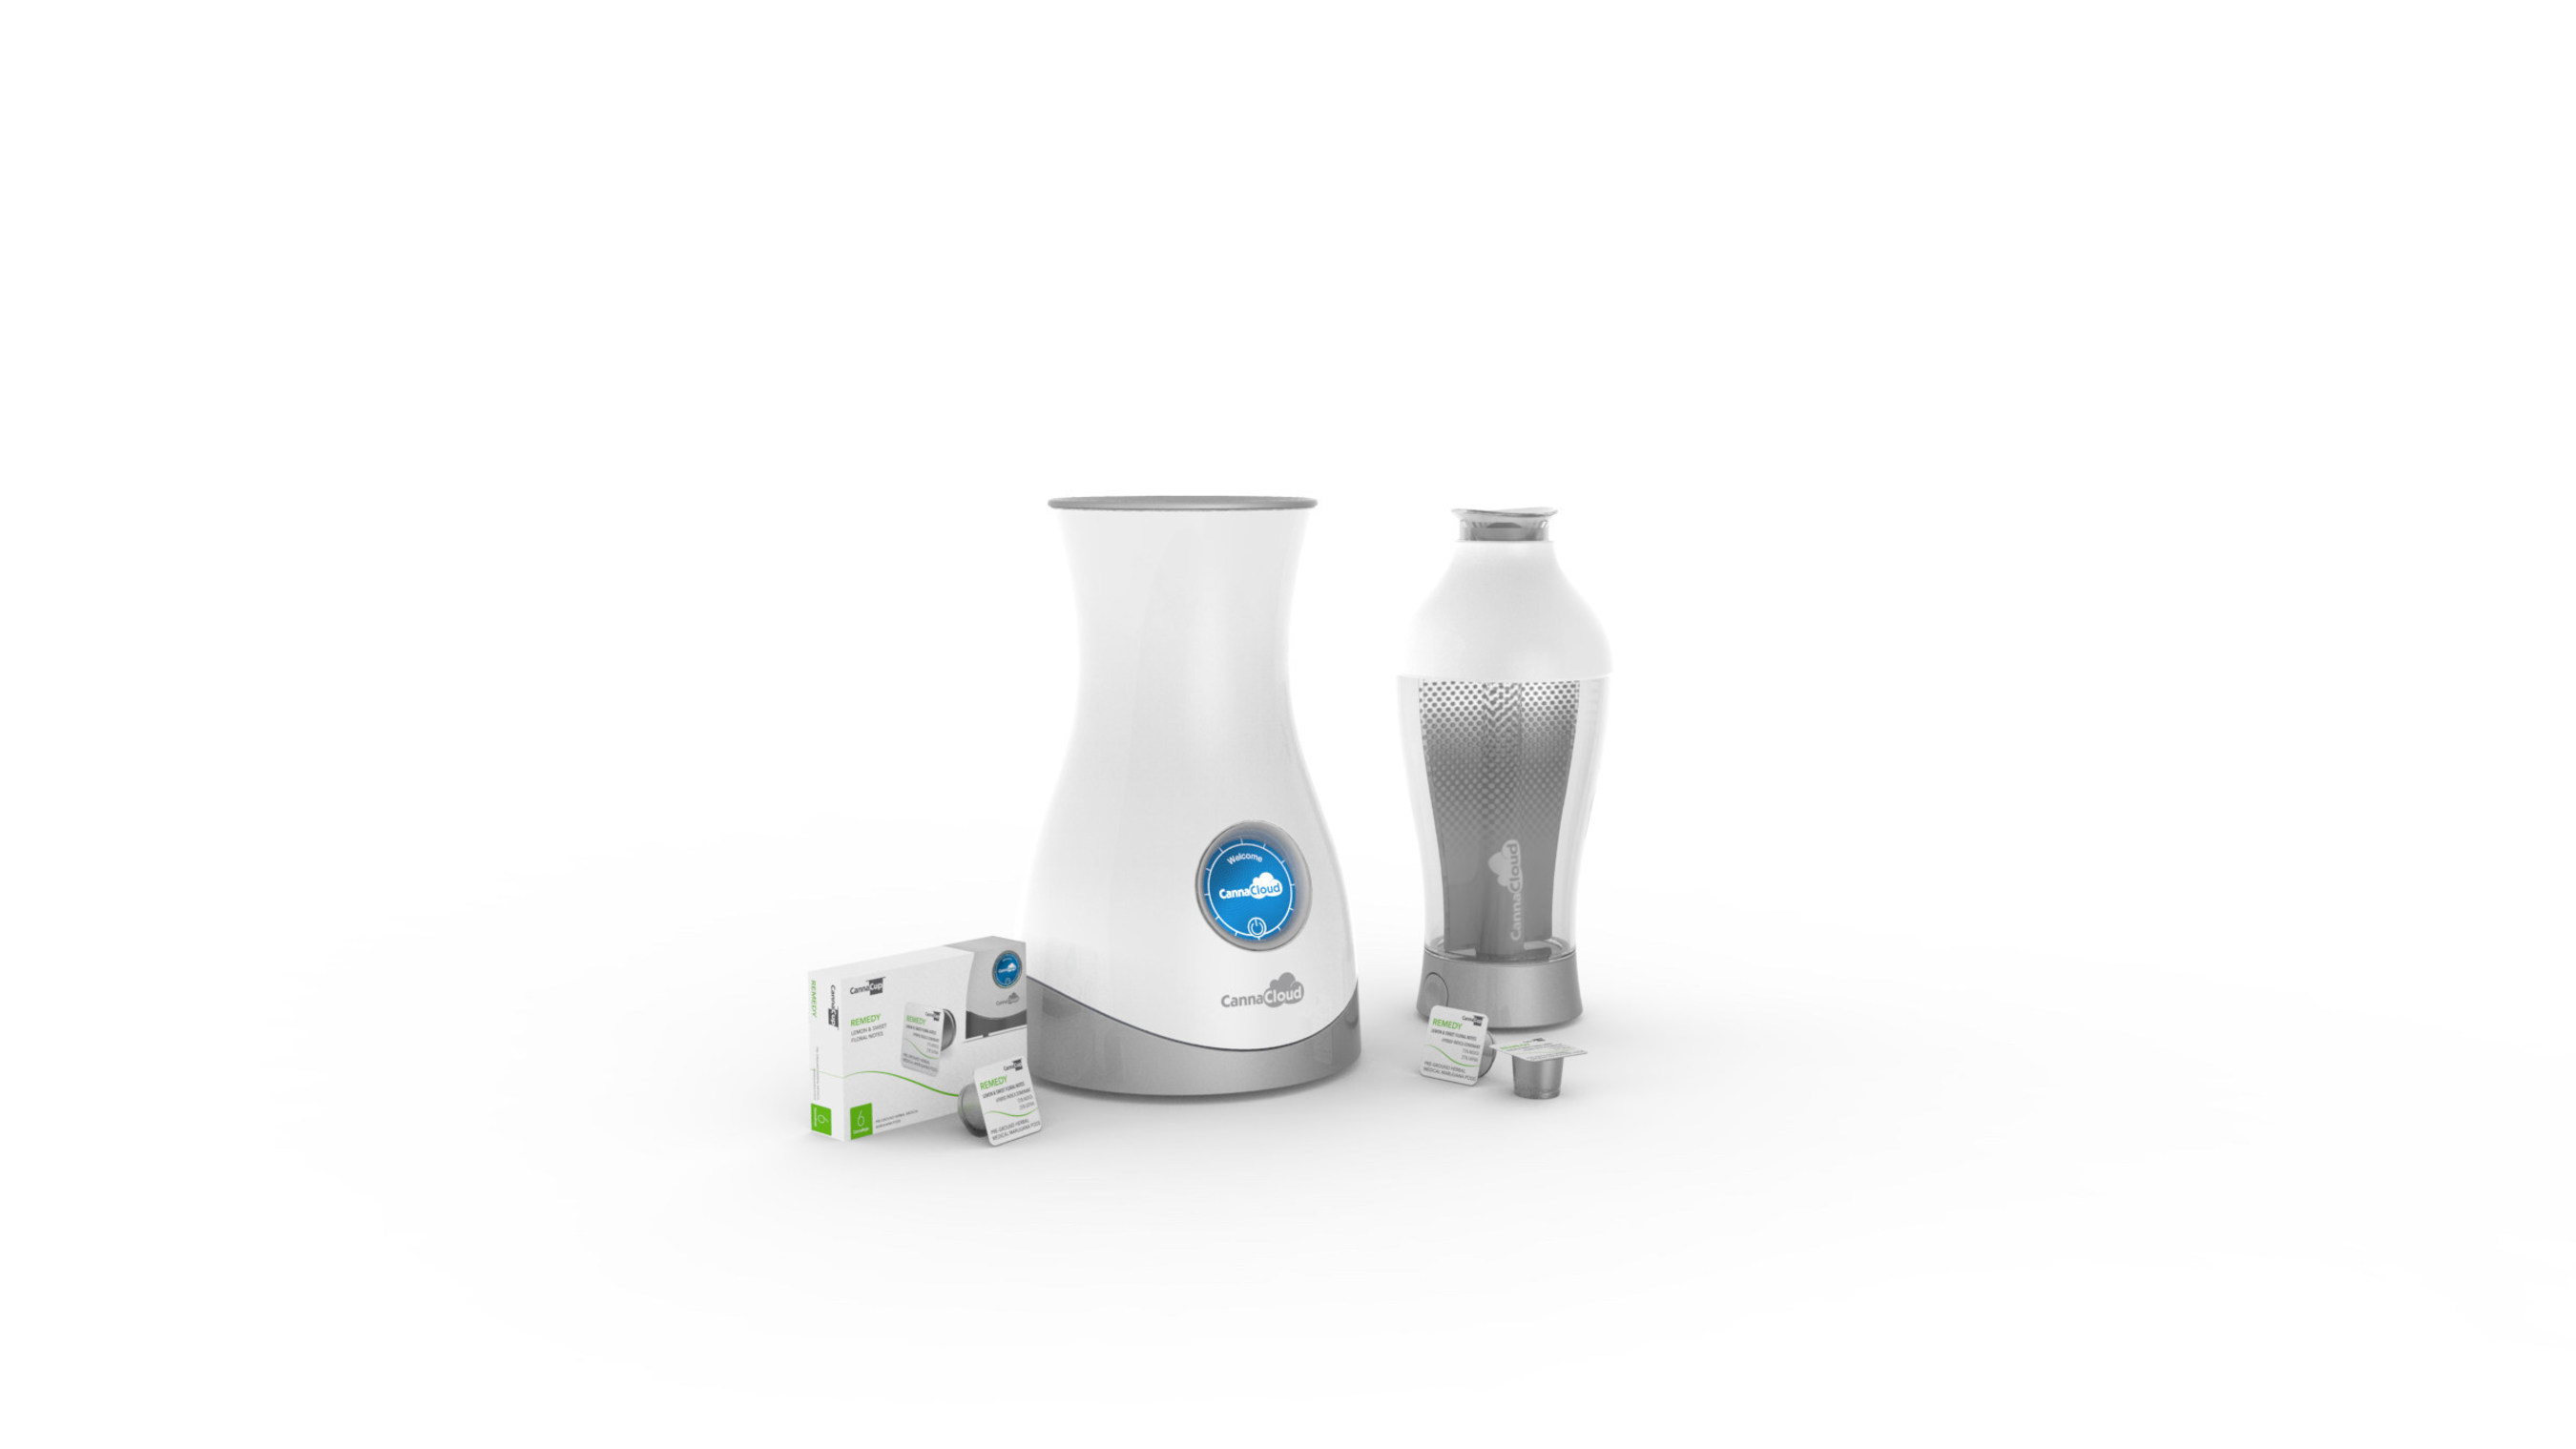 CannaKorp Inc. a Boston based start-up announced today the worlds first single-use pod based medical marijuana vaporizer system, the CannaCloud, at the Marijuana Business Expo. A true disruptive technology that is taking the lead in this rapidly growing industry and addressing consumer medical needs. The patient simply inserts a CannaCup into the CannaCloud base and in less than 60 seconds high quality vapor is produced. The CannaCloud $149.99 and CannaCup $9.99 available Fall 2016.